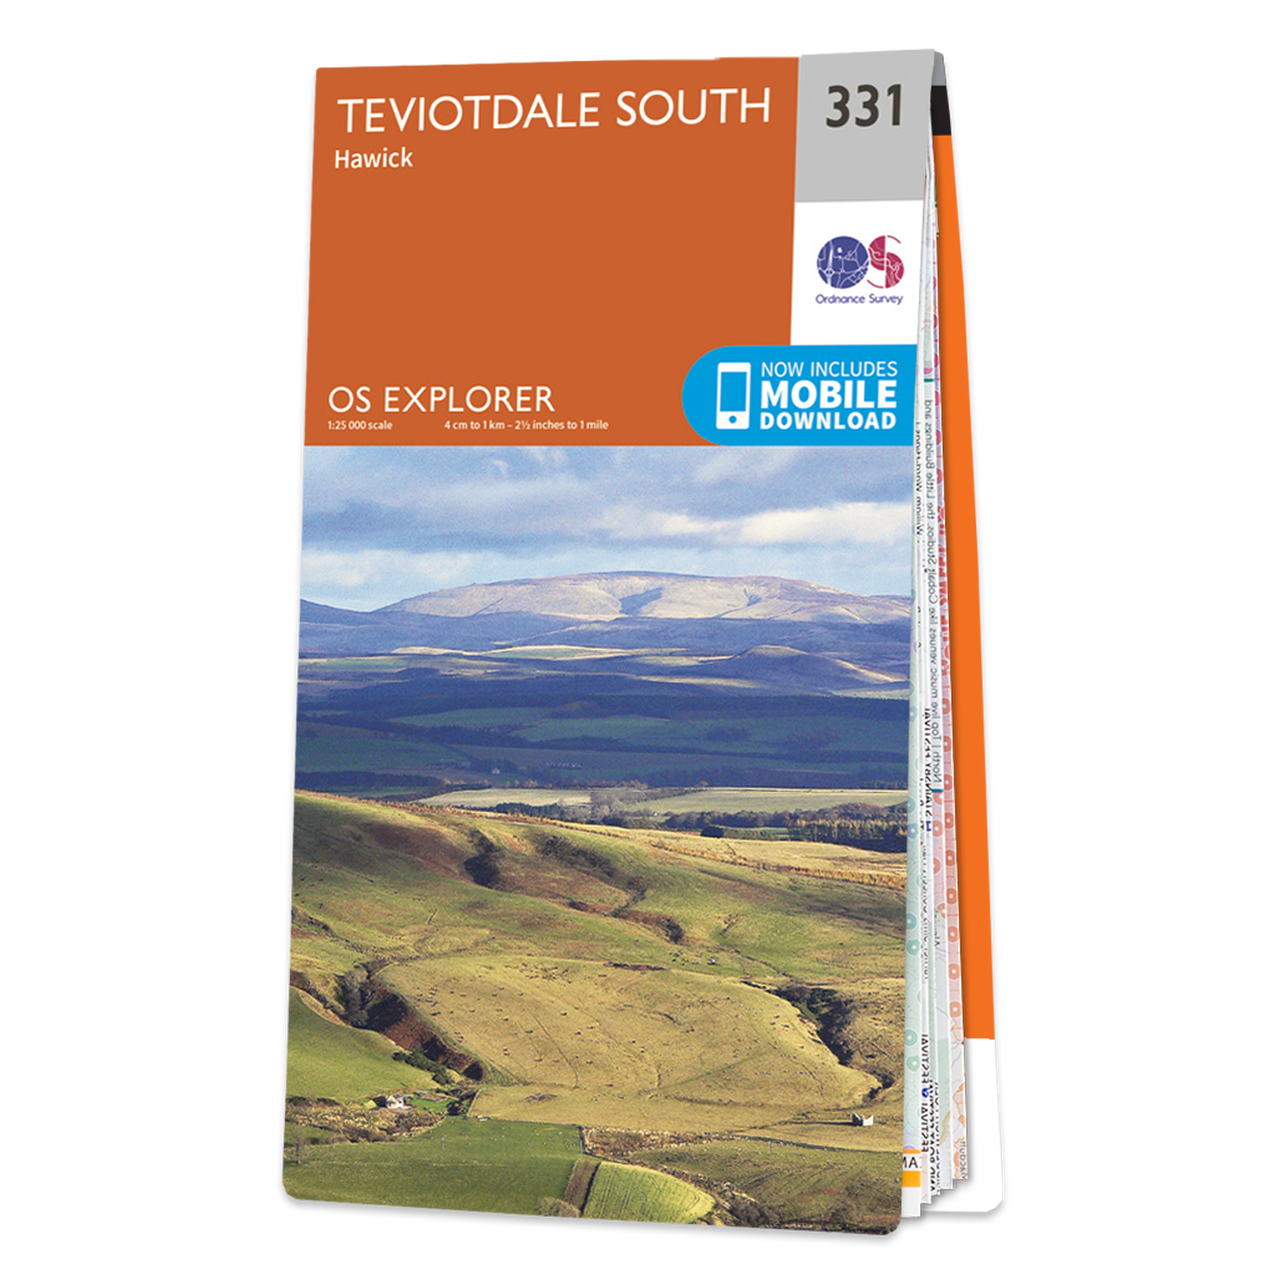 Map Of Teviotdale South